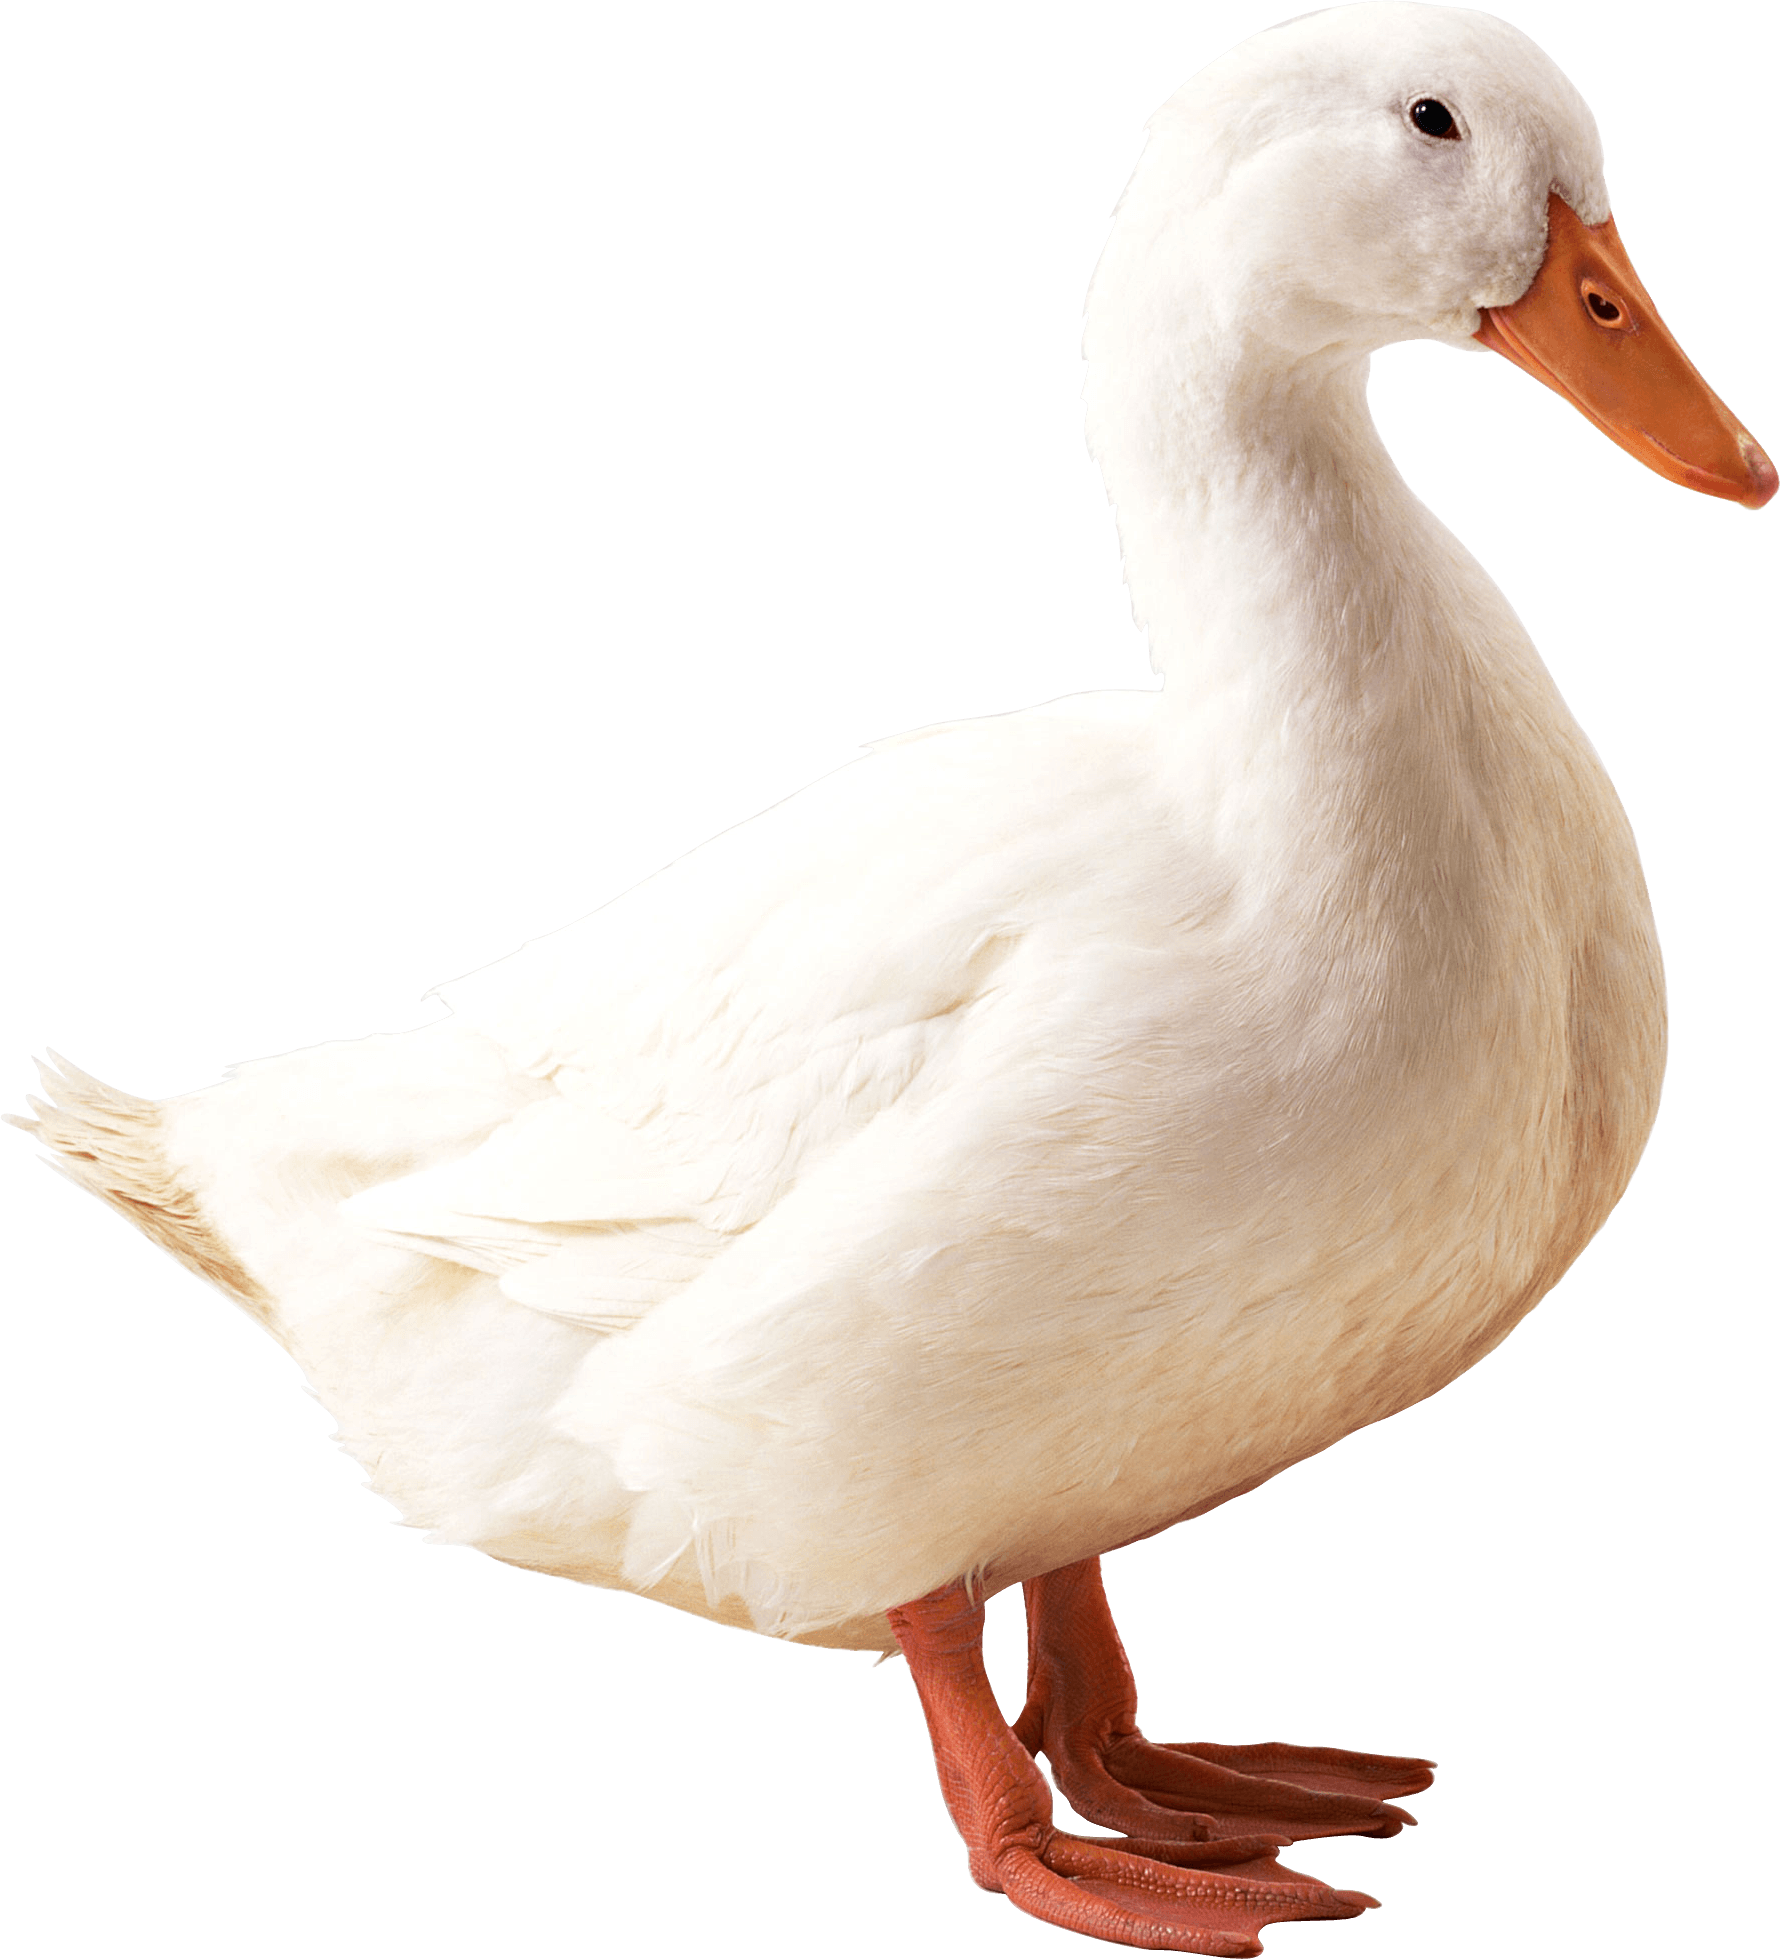 White Duck Png Image PNG Image - Duck PNG